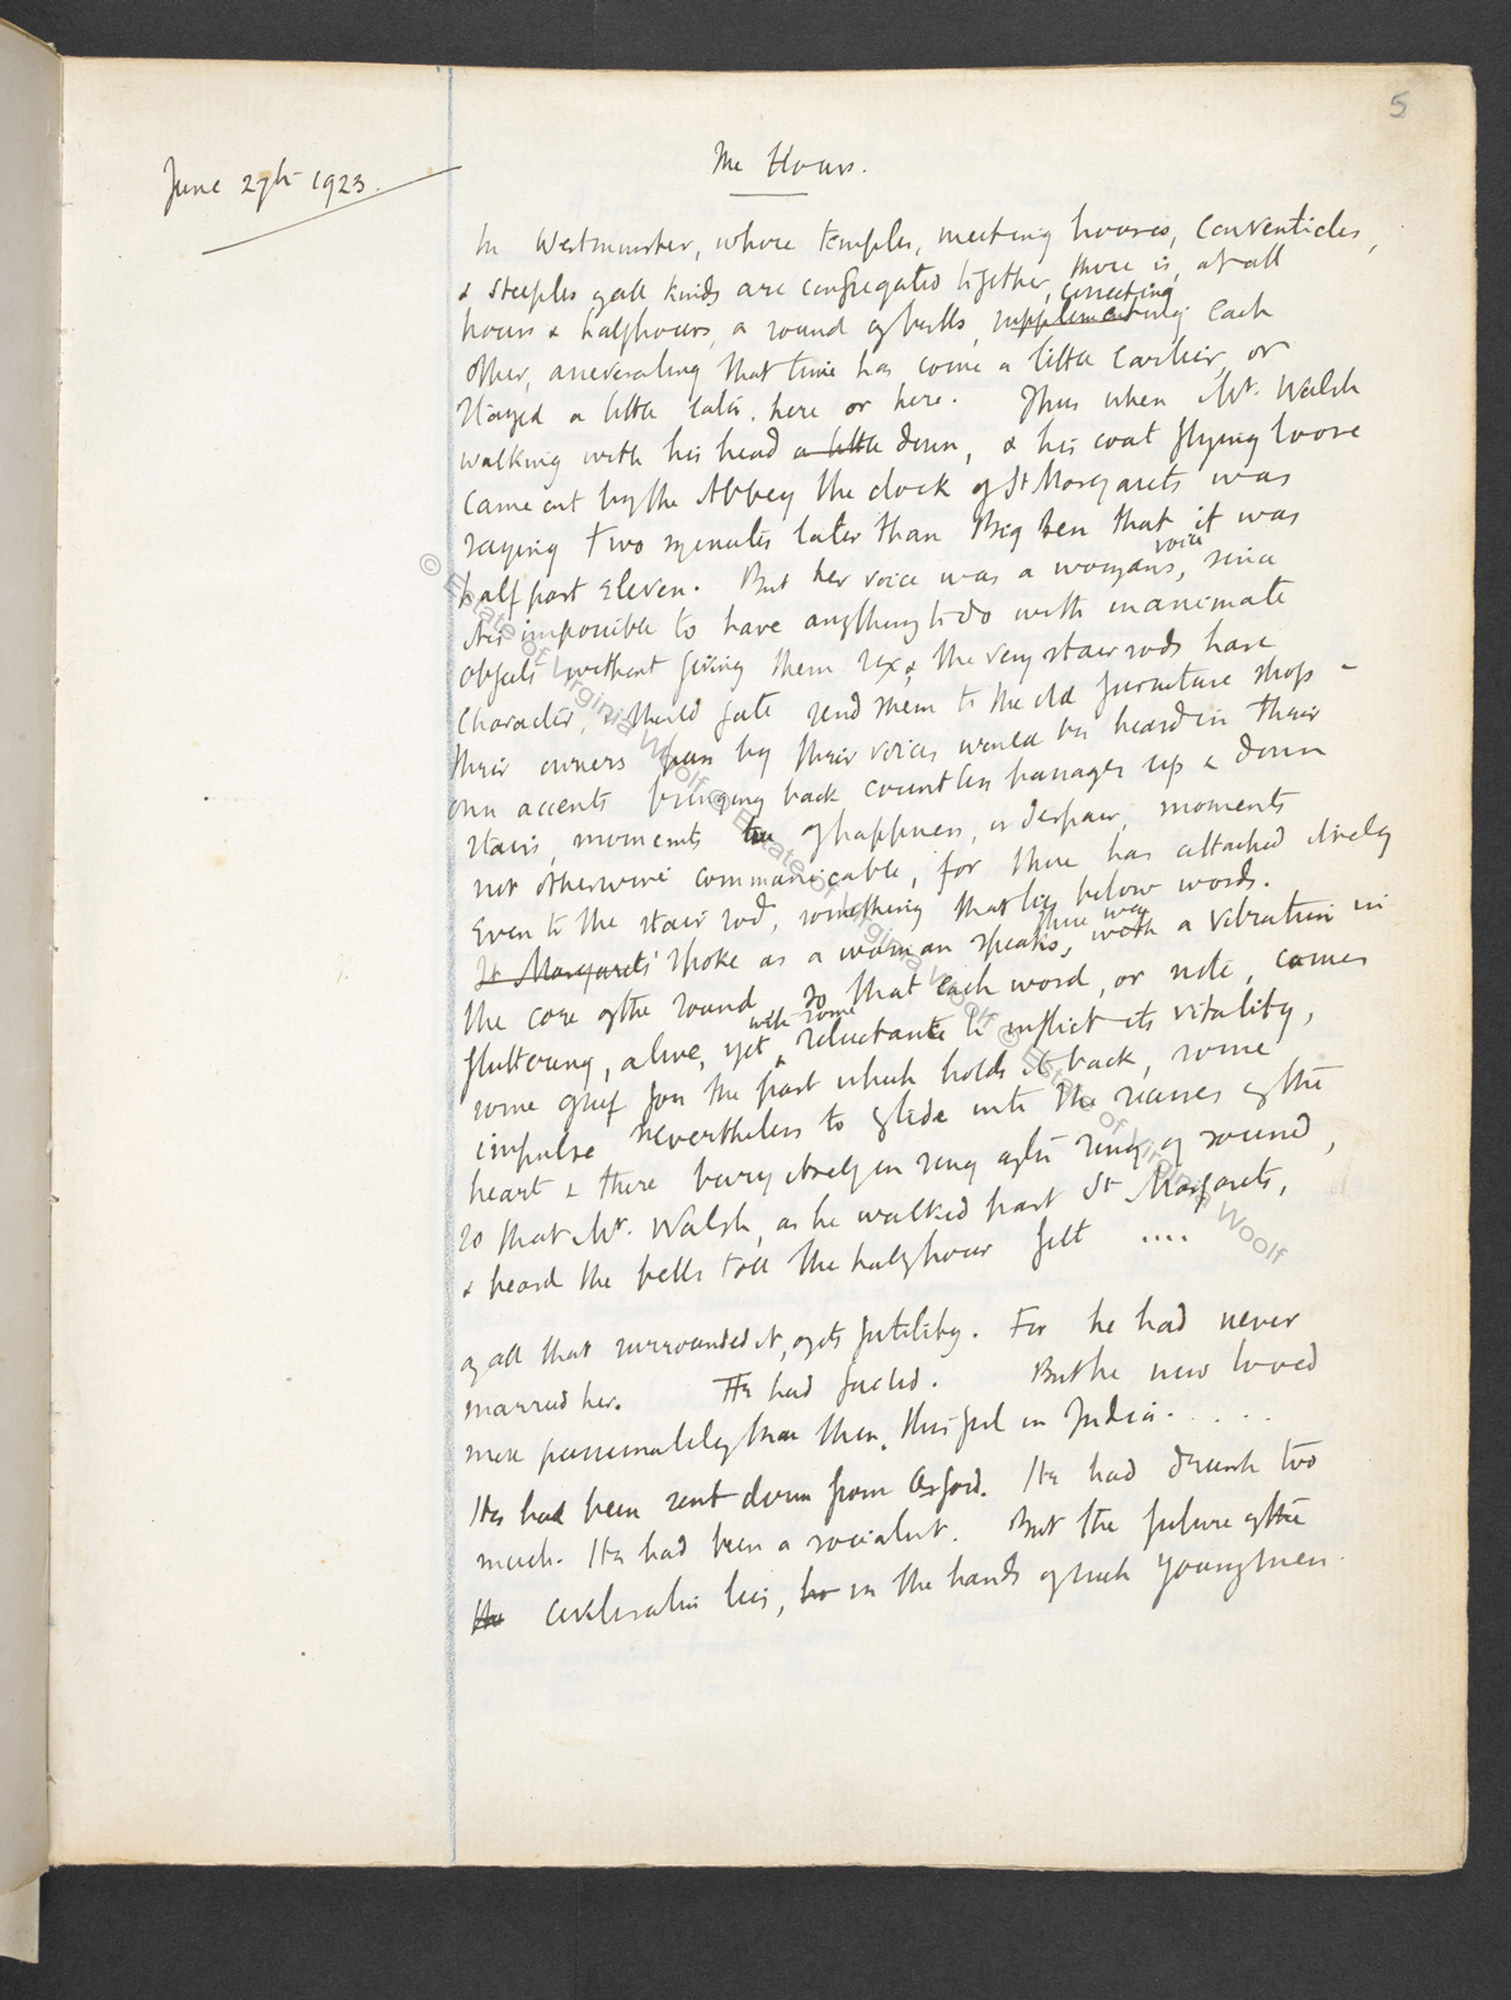 Notebook drafts of Virginia Woolf's Mrs Dalloway (Volume I)